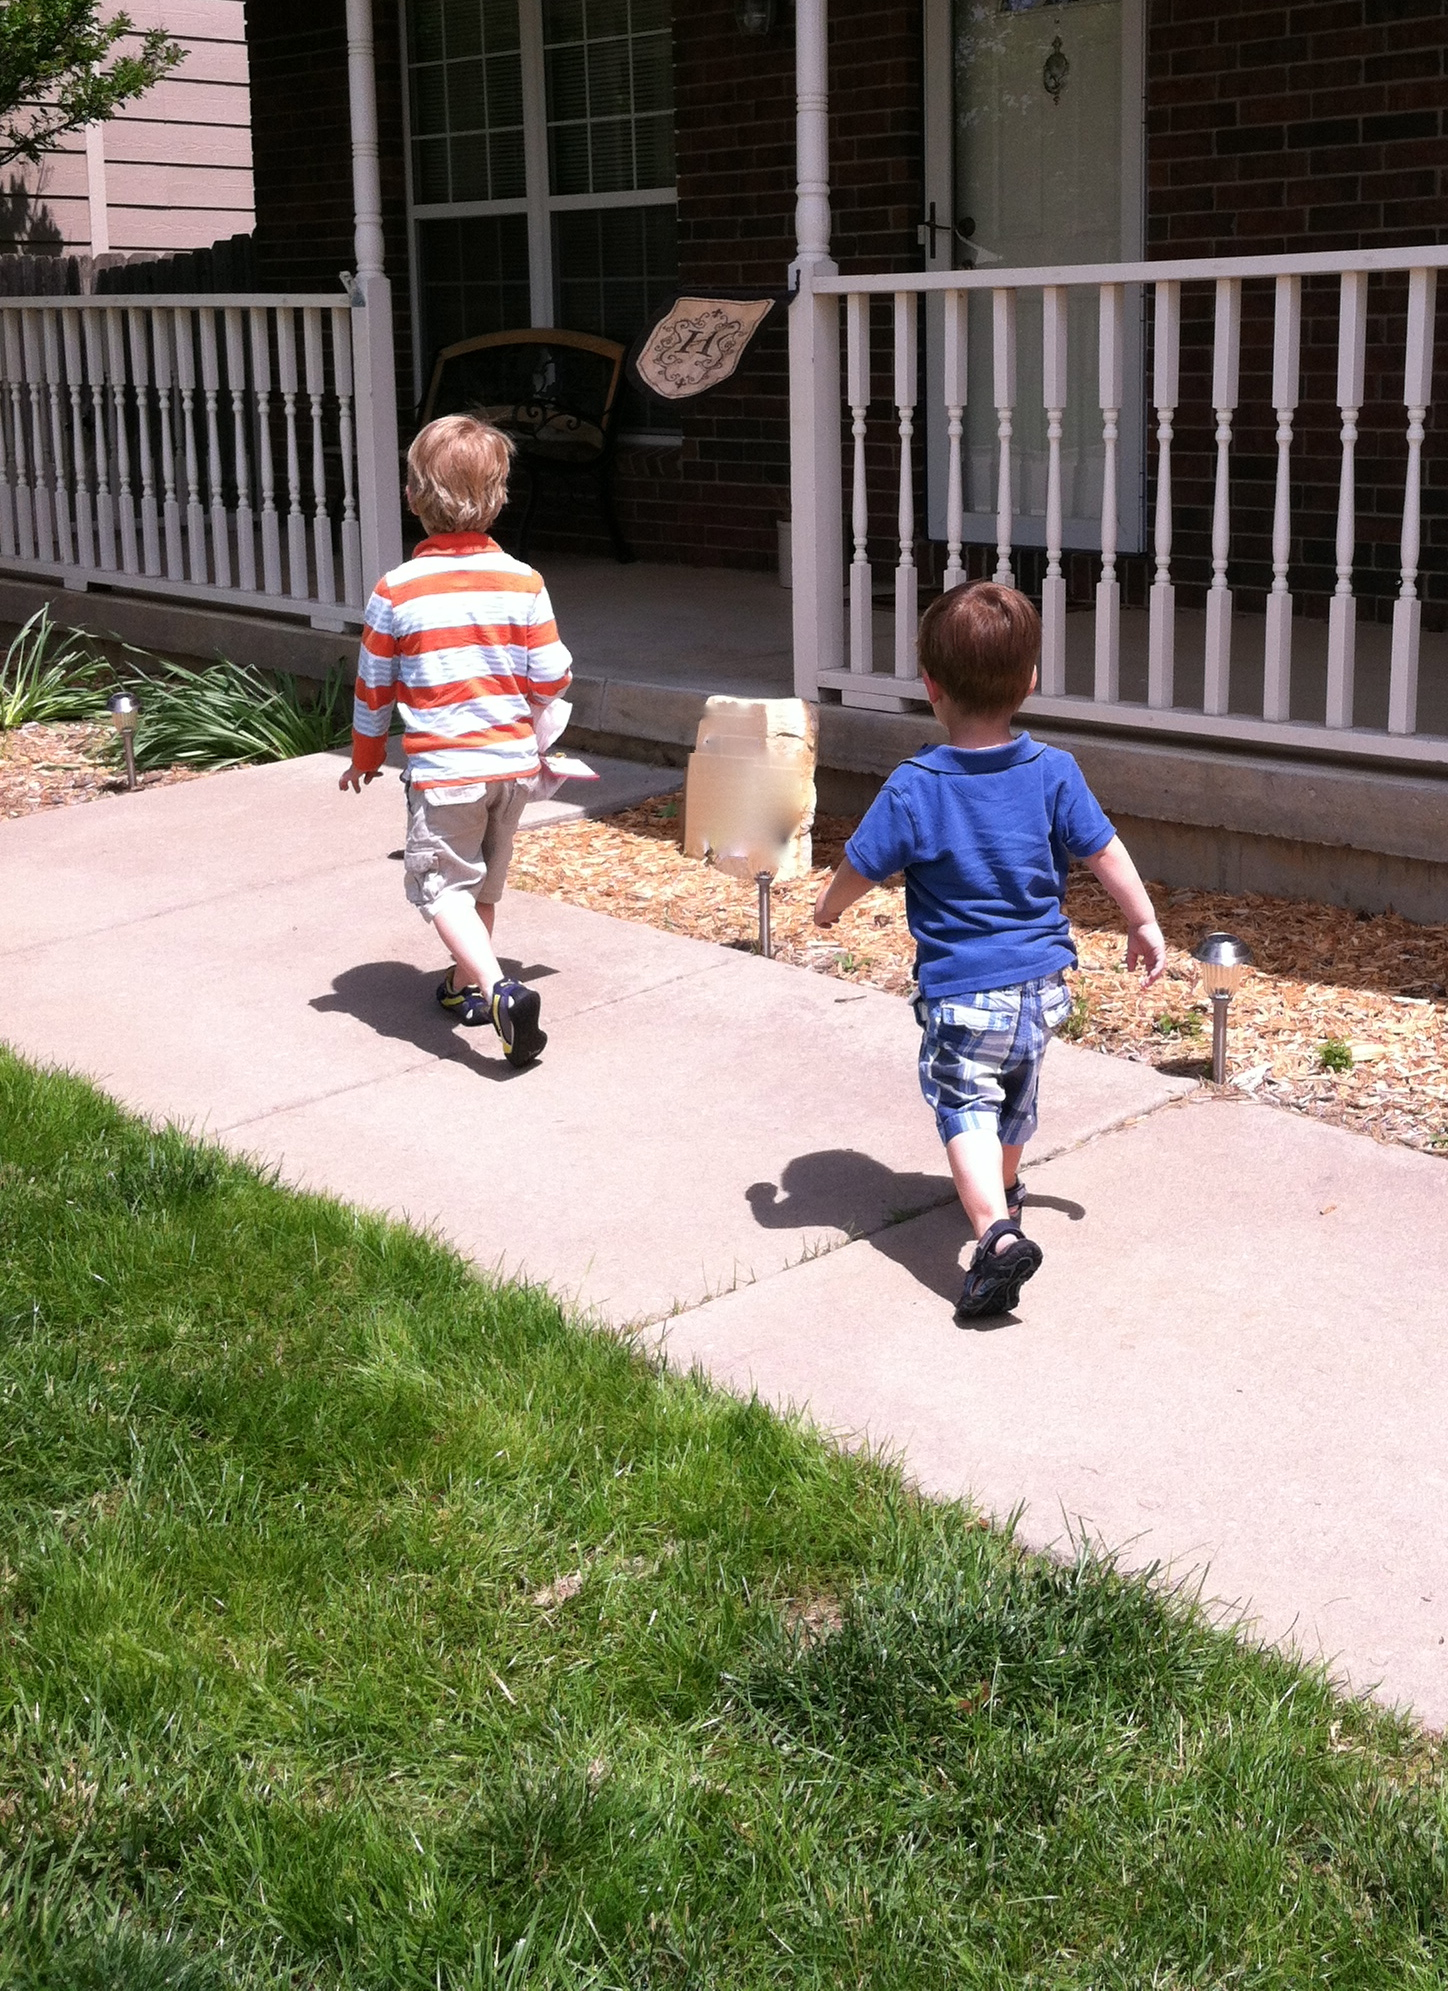 Child Running Away From Home - But their favorite part was running away after they rang the door bell